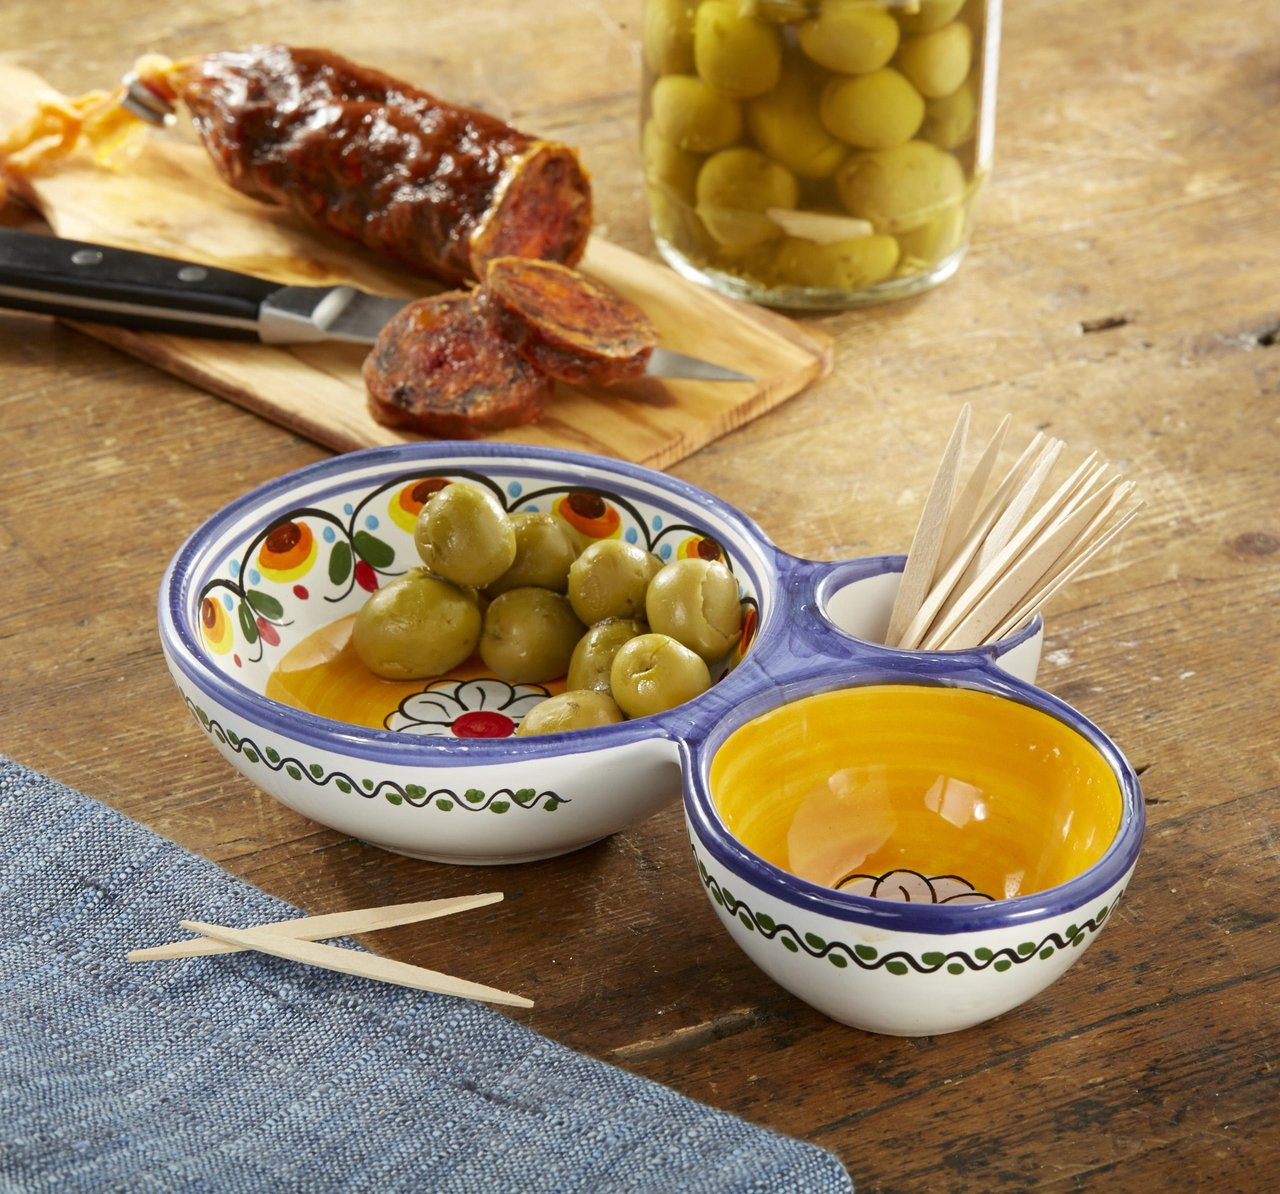 Blue and Yellow Ceramic Olive Dish by La Tienda by Ceramical (Image #2)